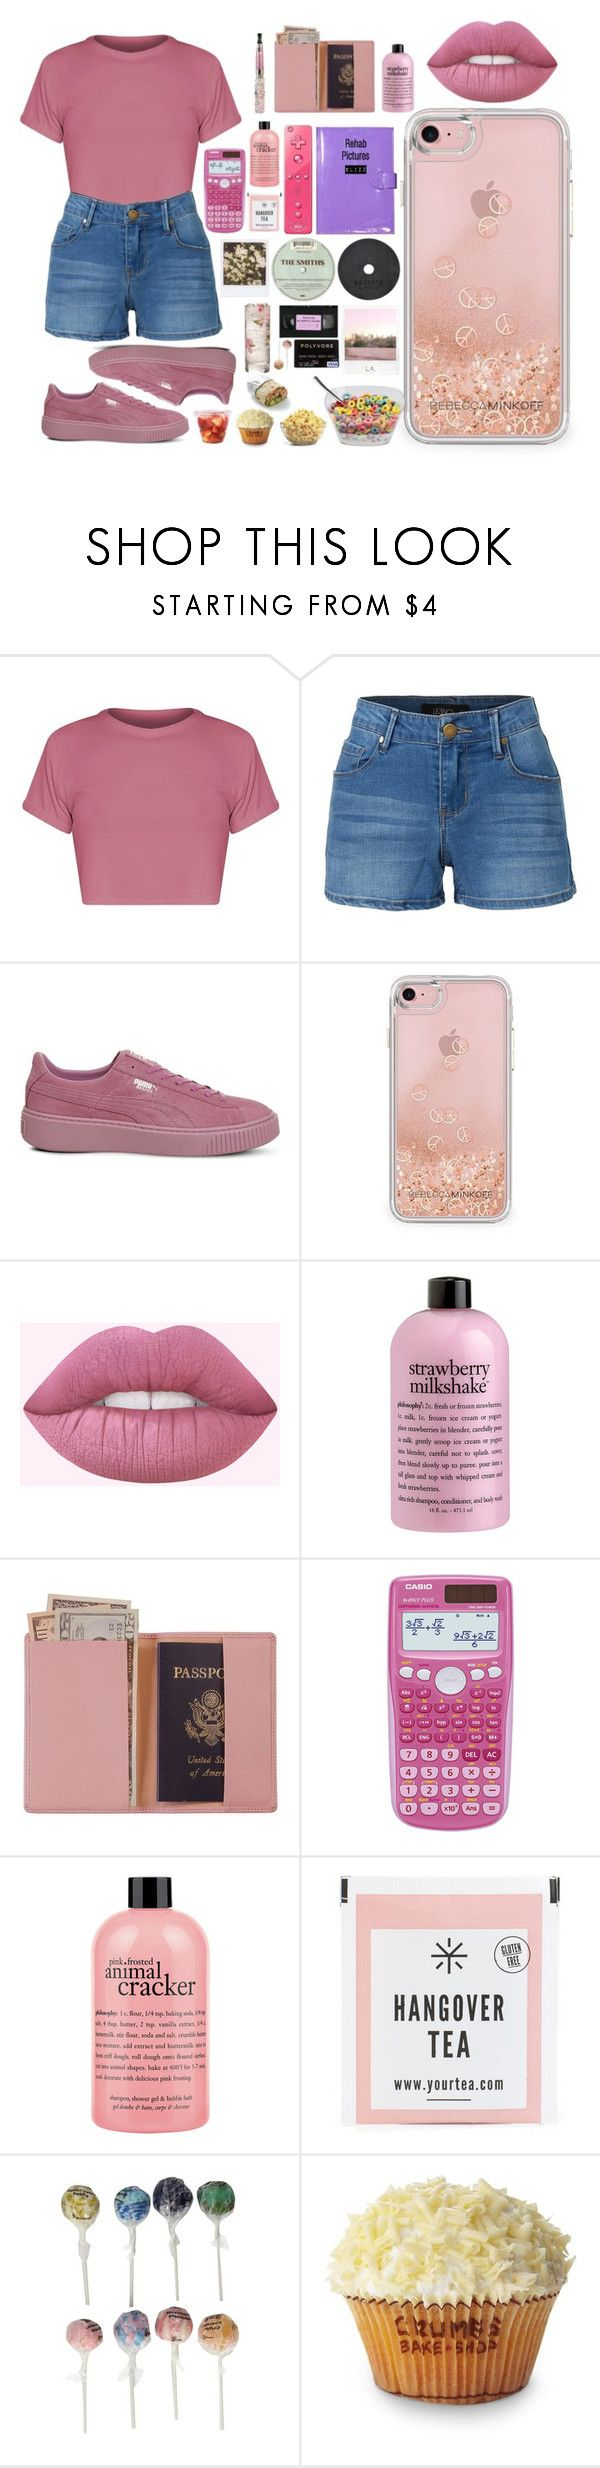 """Release Me"" by elizz-denne on Polyvore featuring LE3NO, Puma, Rebecca Minkoff, philosophy, Royce Leather, Casio, Nintendo, St. Tropez, Polaroid and Original Gourmet Food Company"